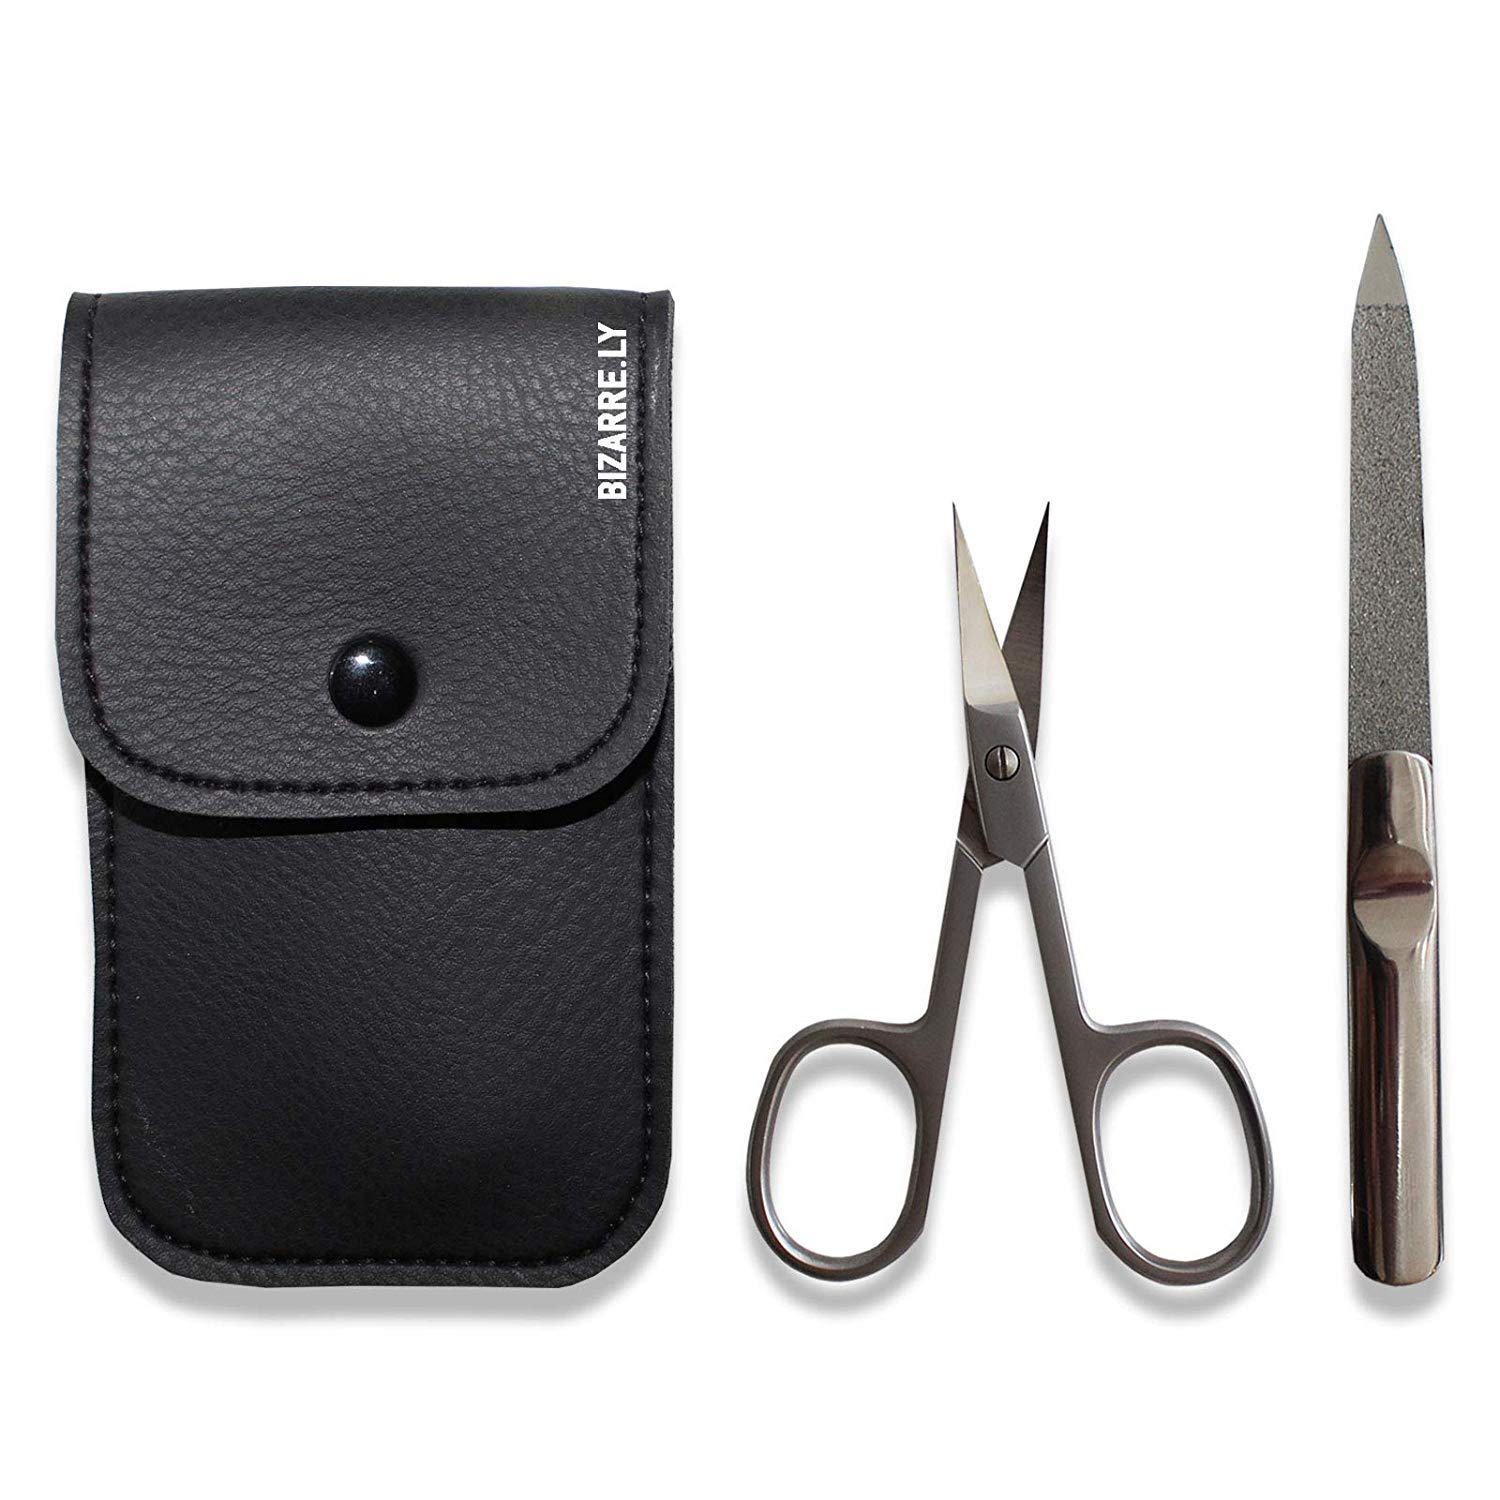 Best Rated In Nail Scissors & Helpful Customer Reviews